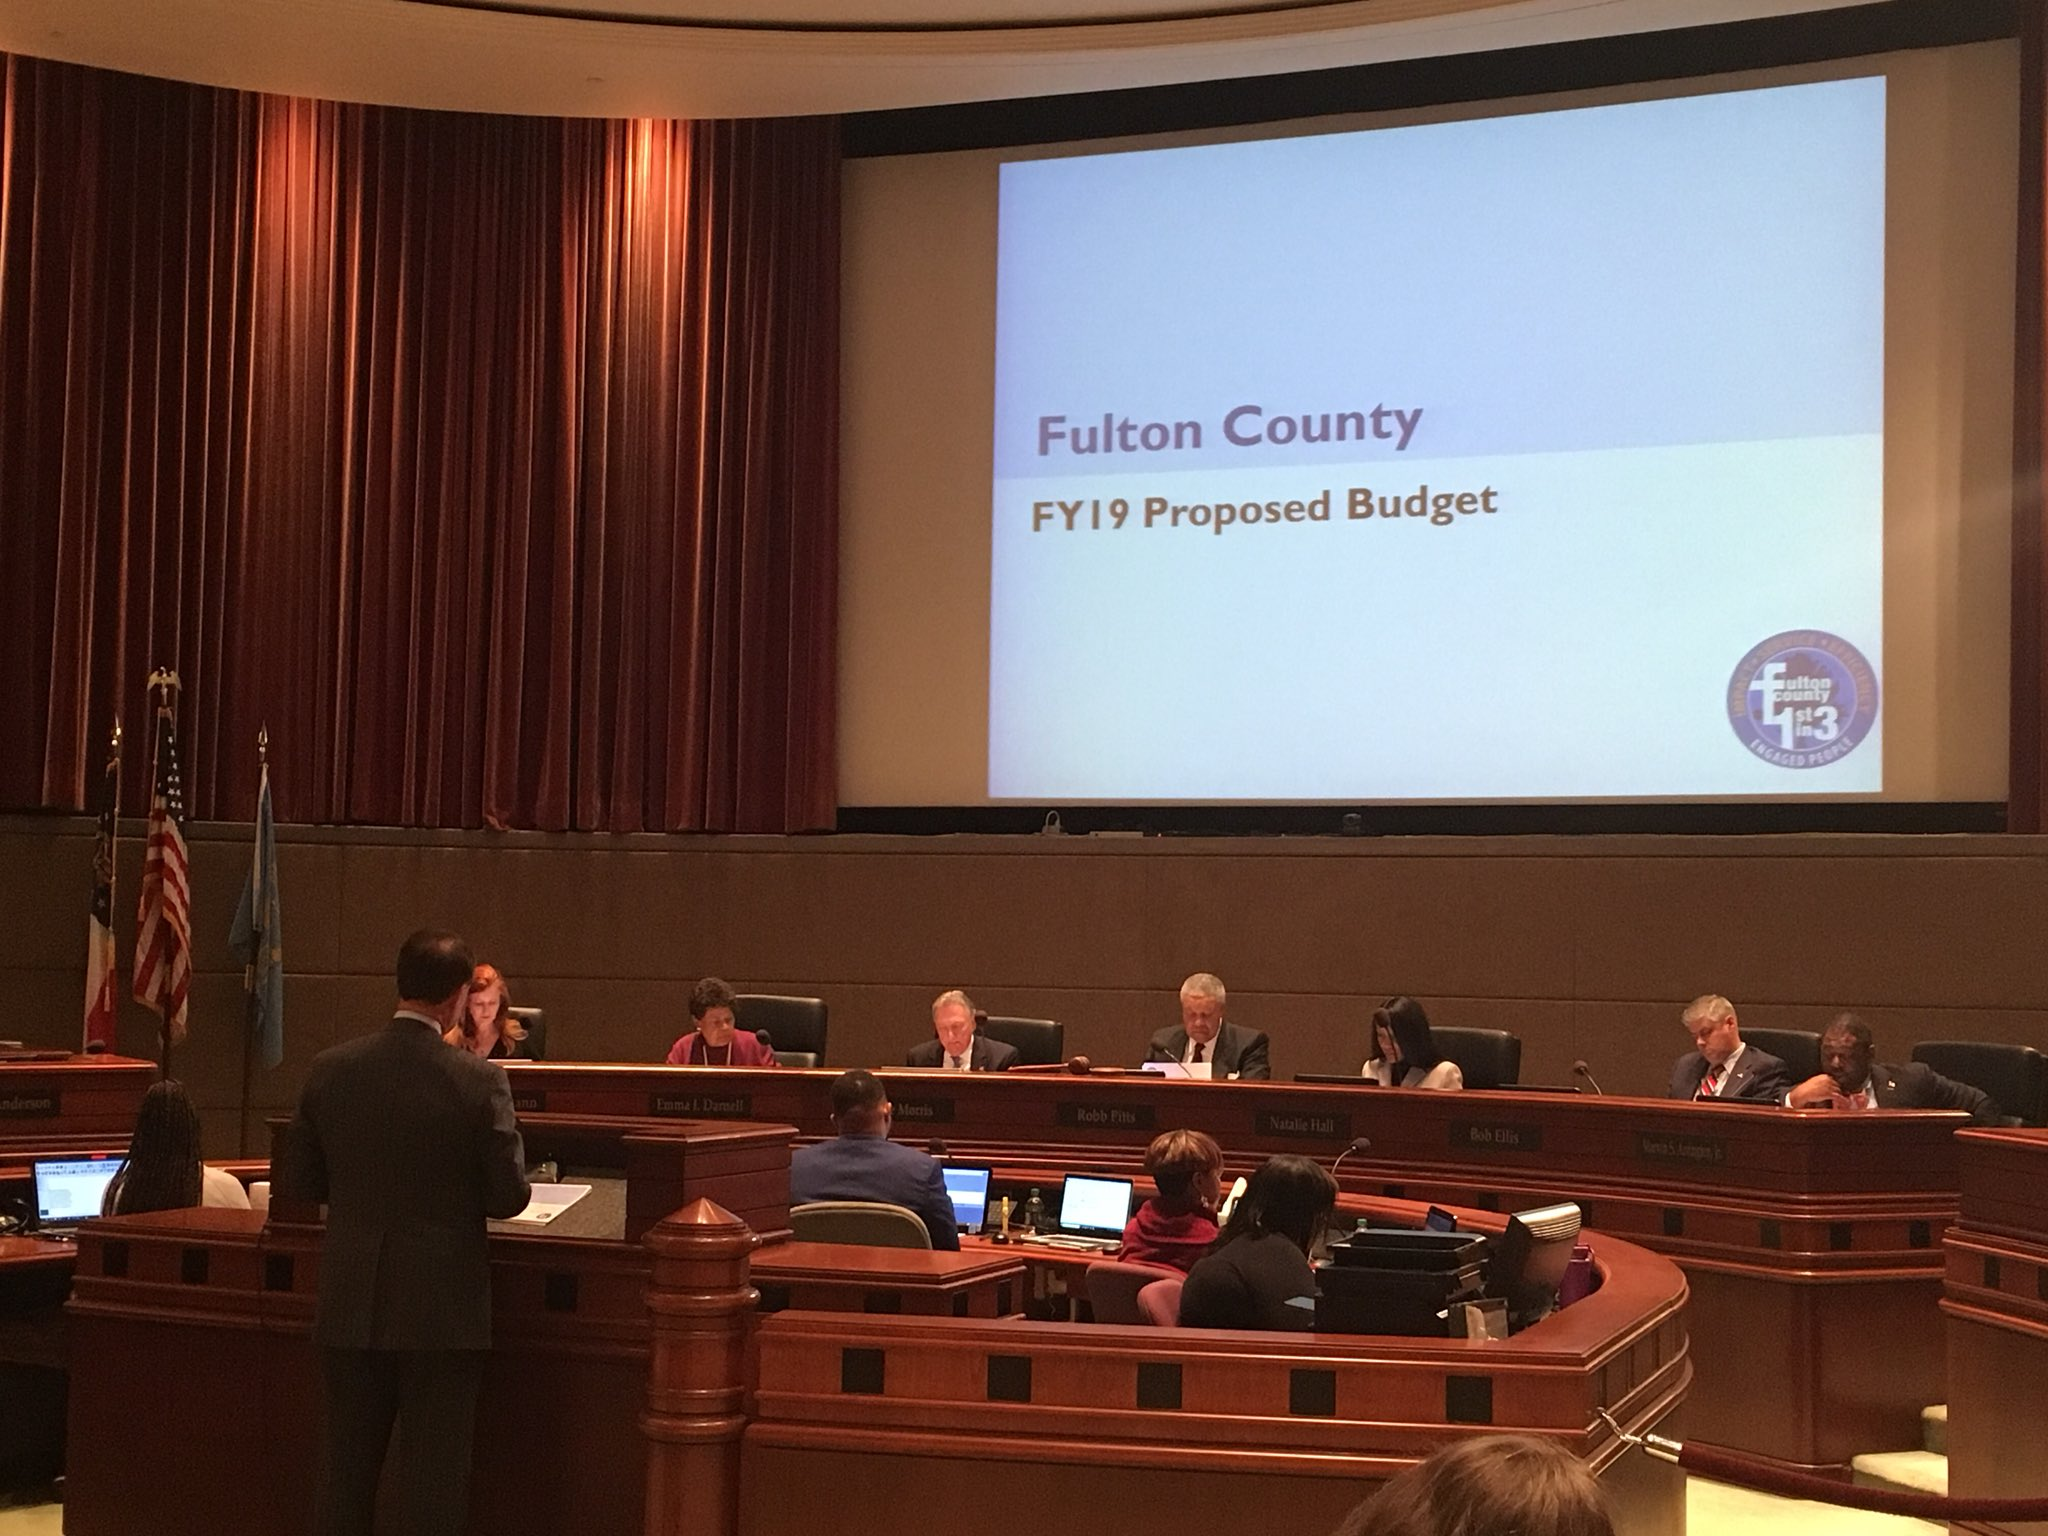 Board of Commissioners discuss a presentation of the FY2019 Proposed Operating Budget. Watch it live on @FGTV https://t.co/ANDHsfYErQ